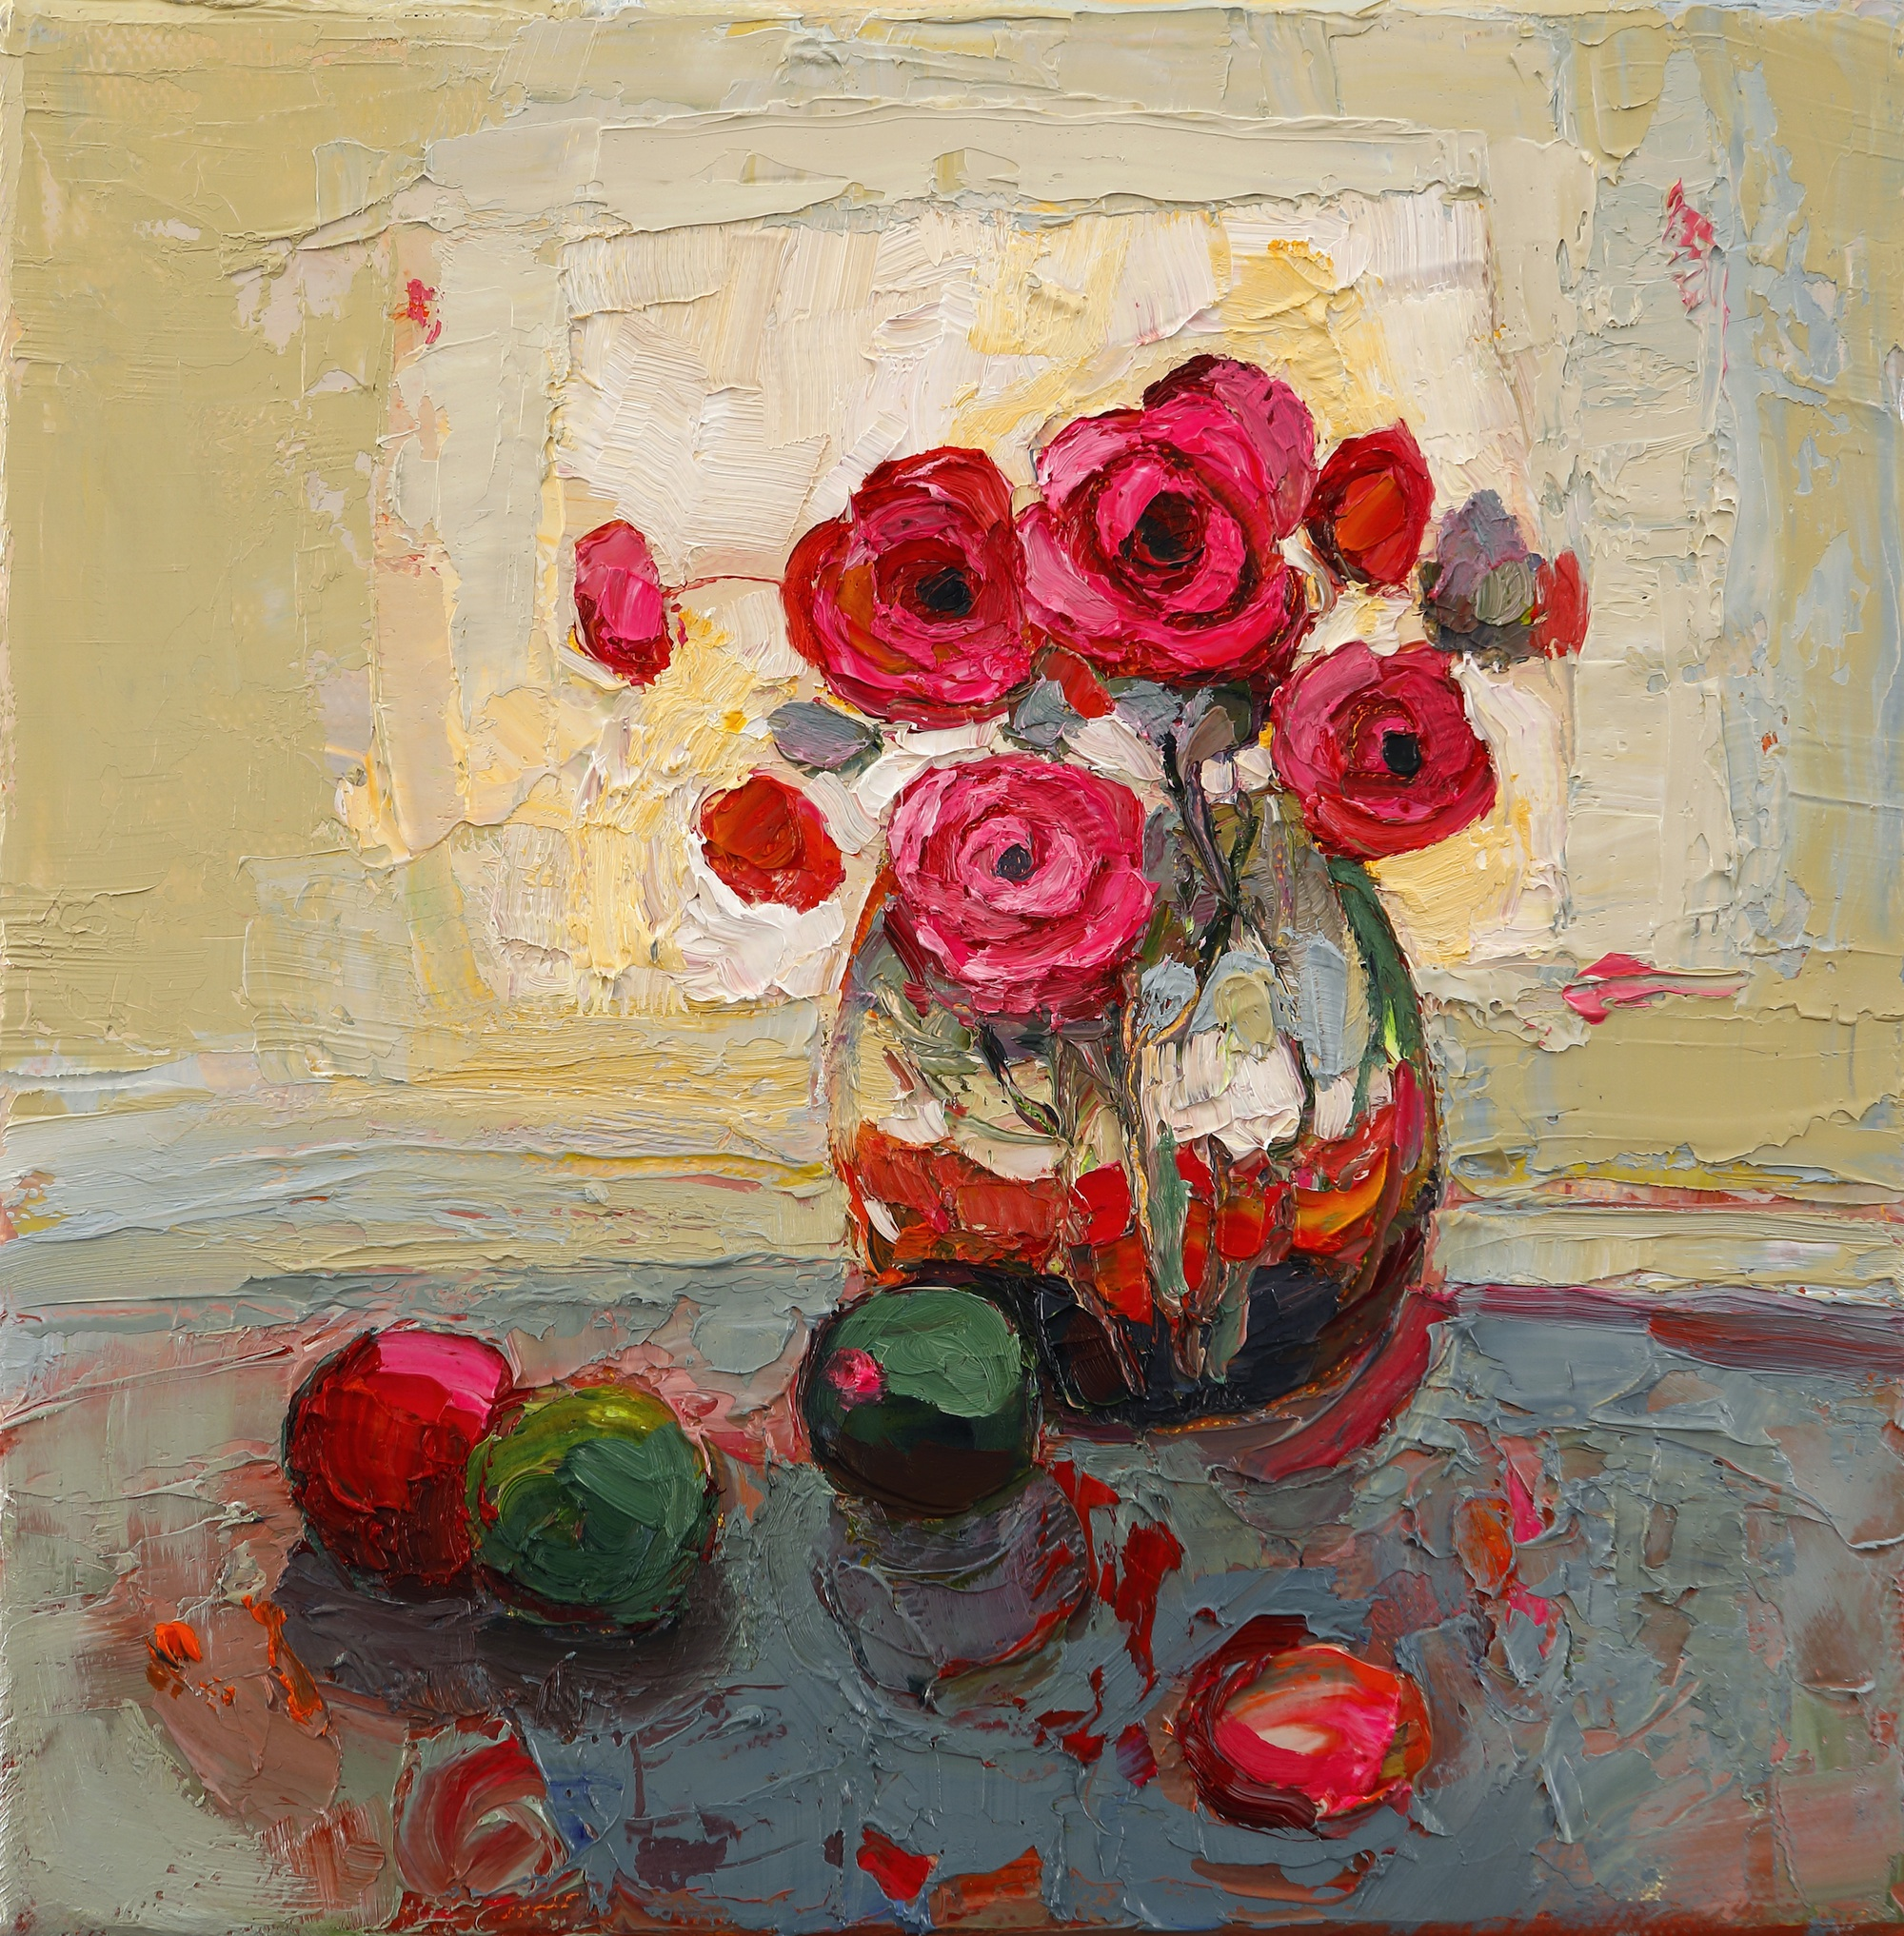 Title: Rosy Glow Size: 8 x 8 inches Medium: Oil on Canvas Price: £900